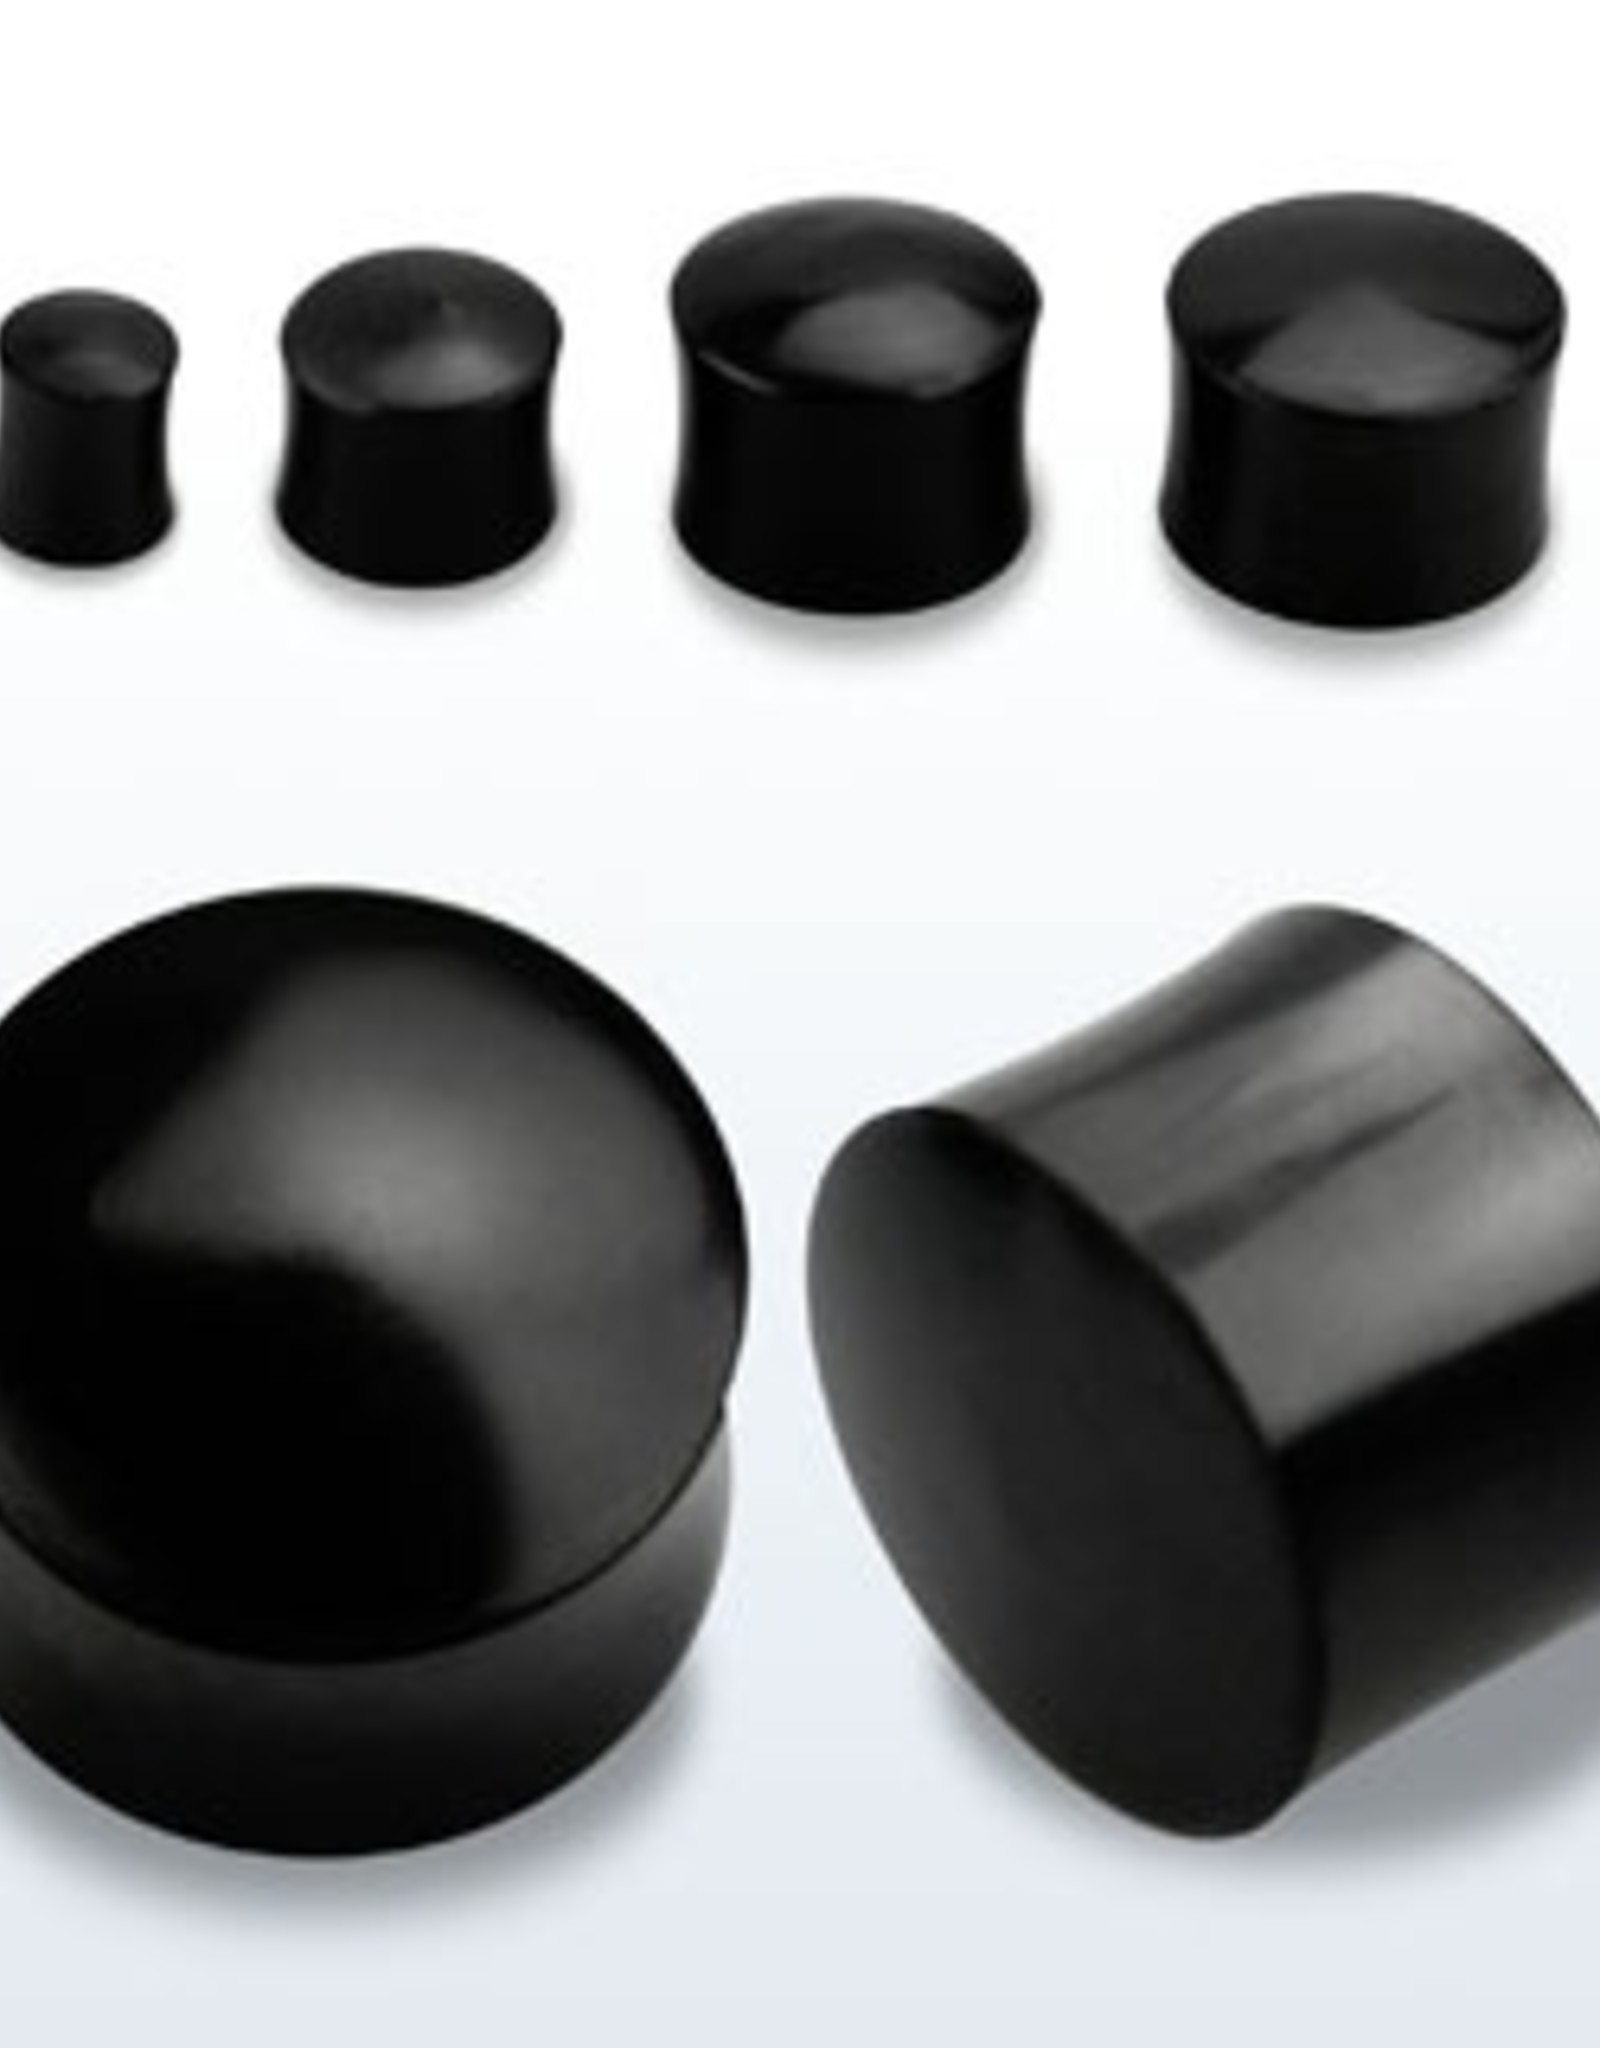 2pc. Black horn double flared solid plug-4g